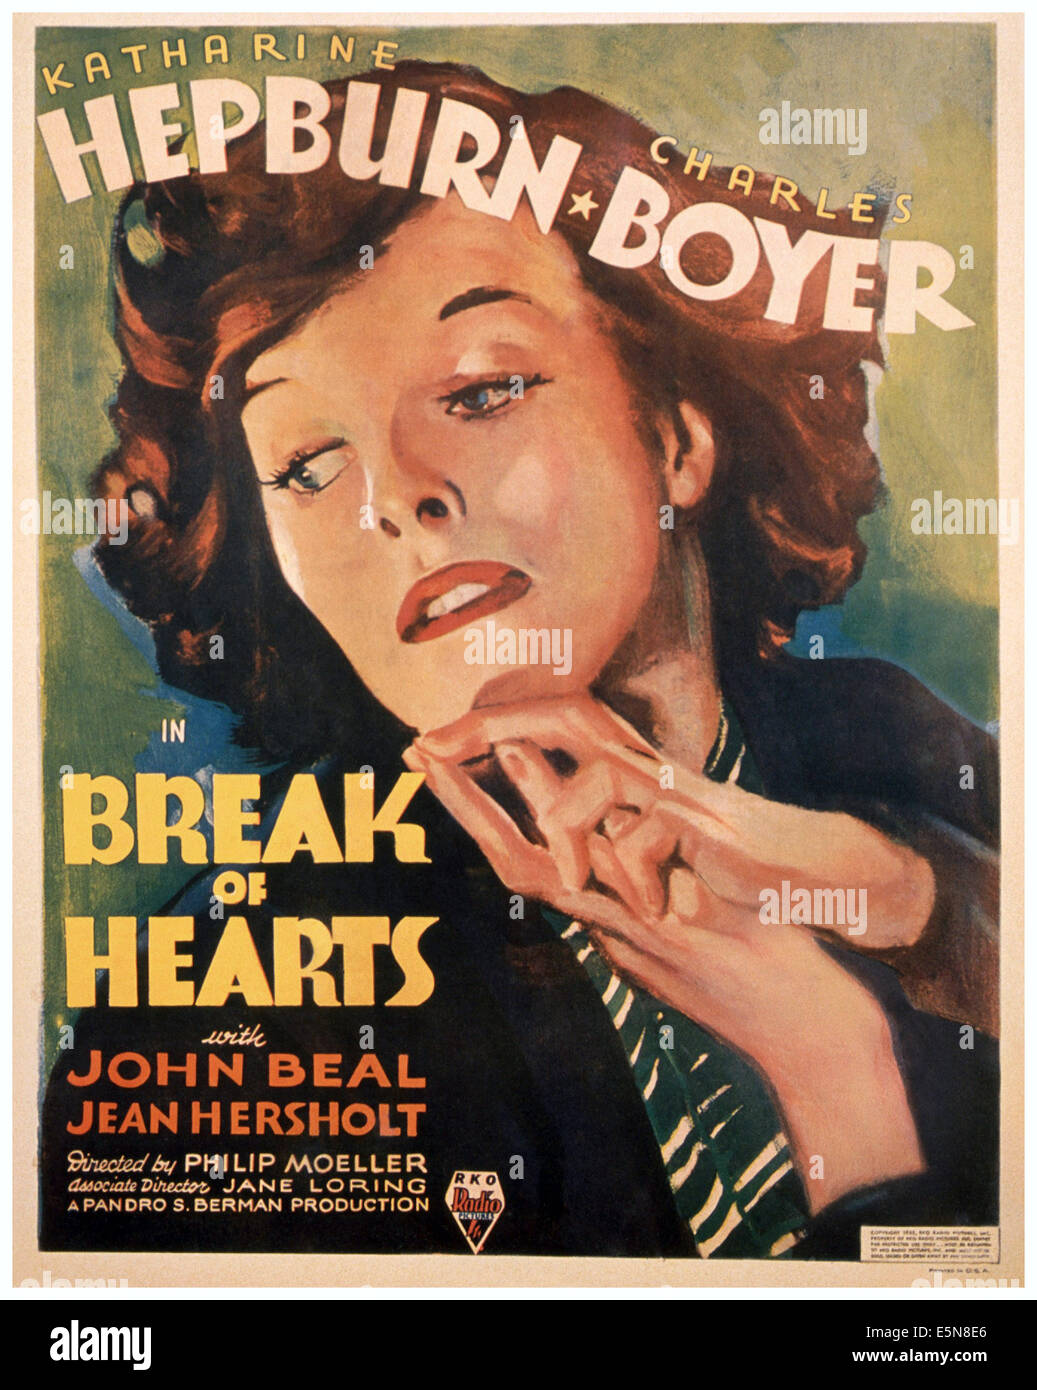 BREAK OF HEARTS, Katharine Hepburn, 1935 - Stock Image